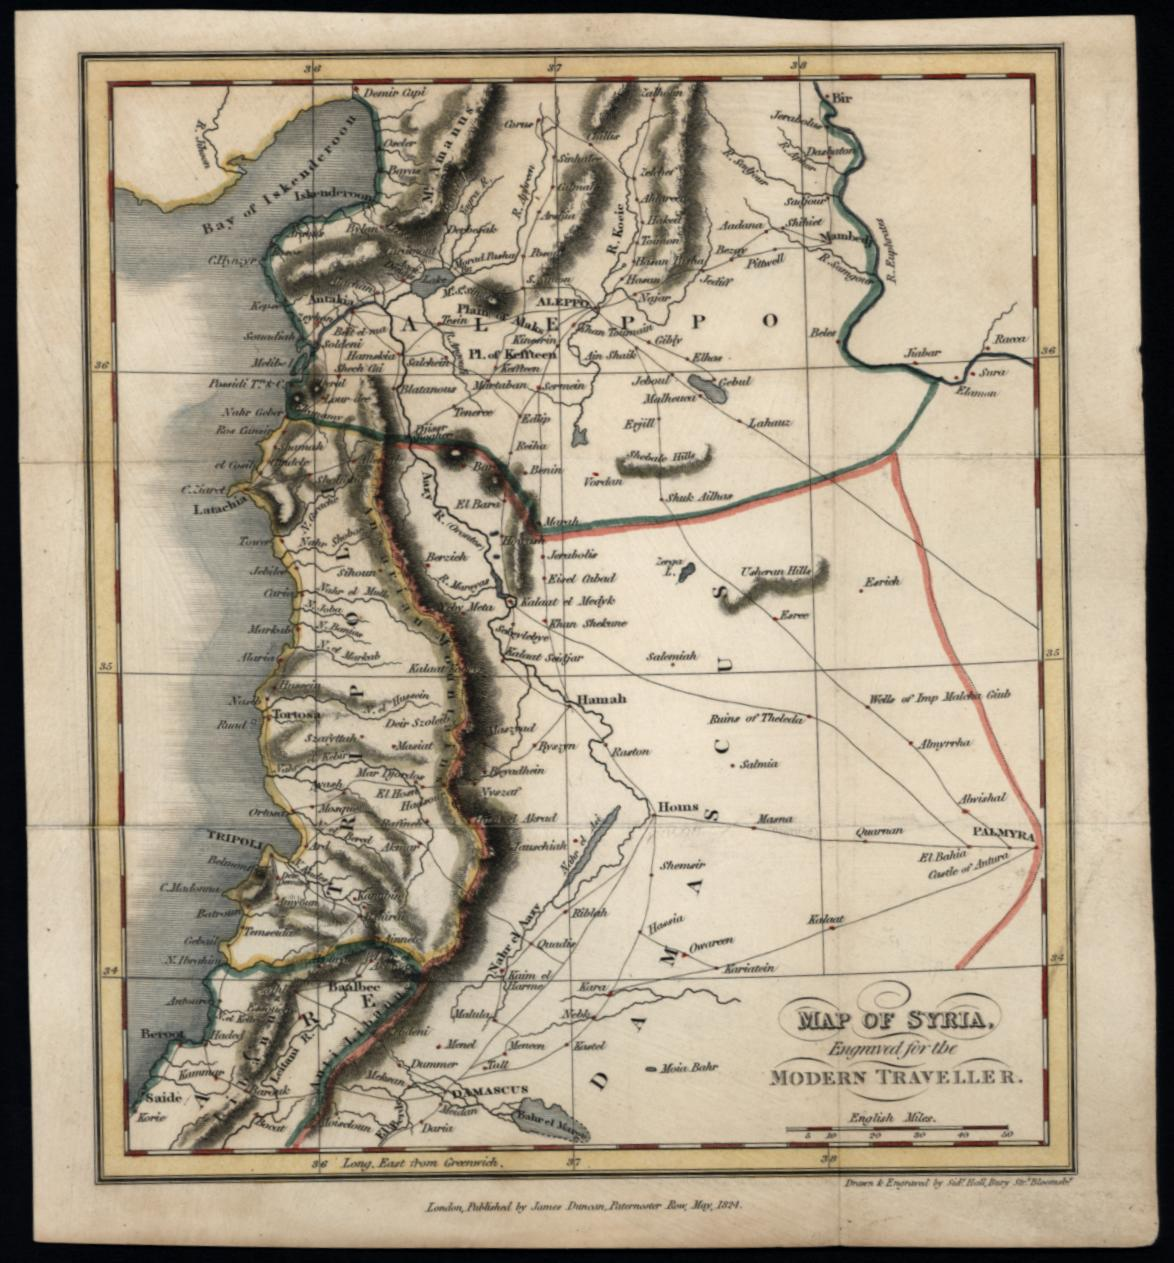 Syria Middle East Aleppo Damascus 1824 Sidney Hall engraved small map | eBay